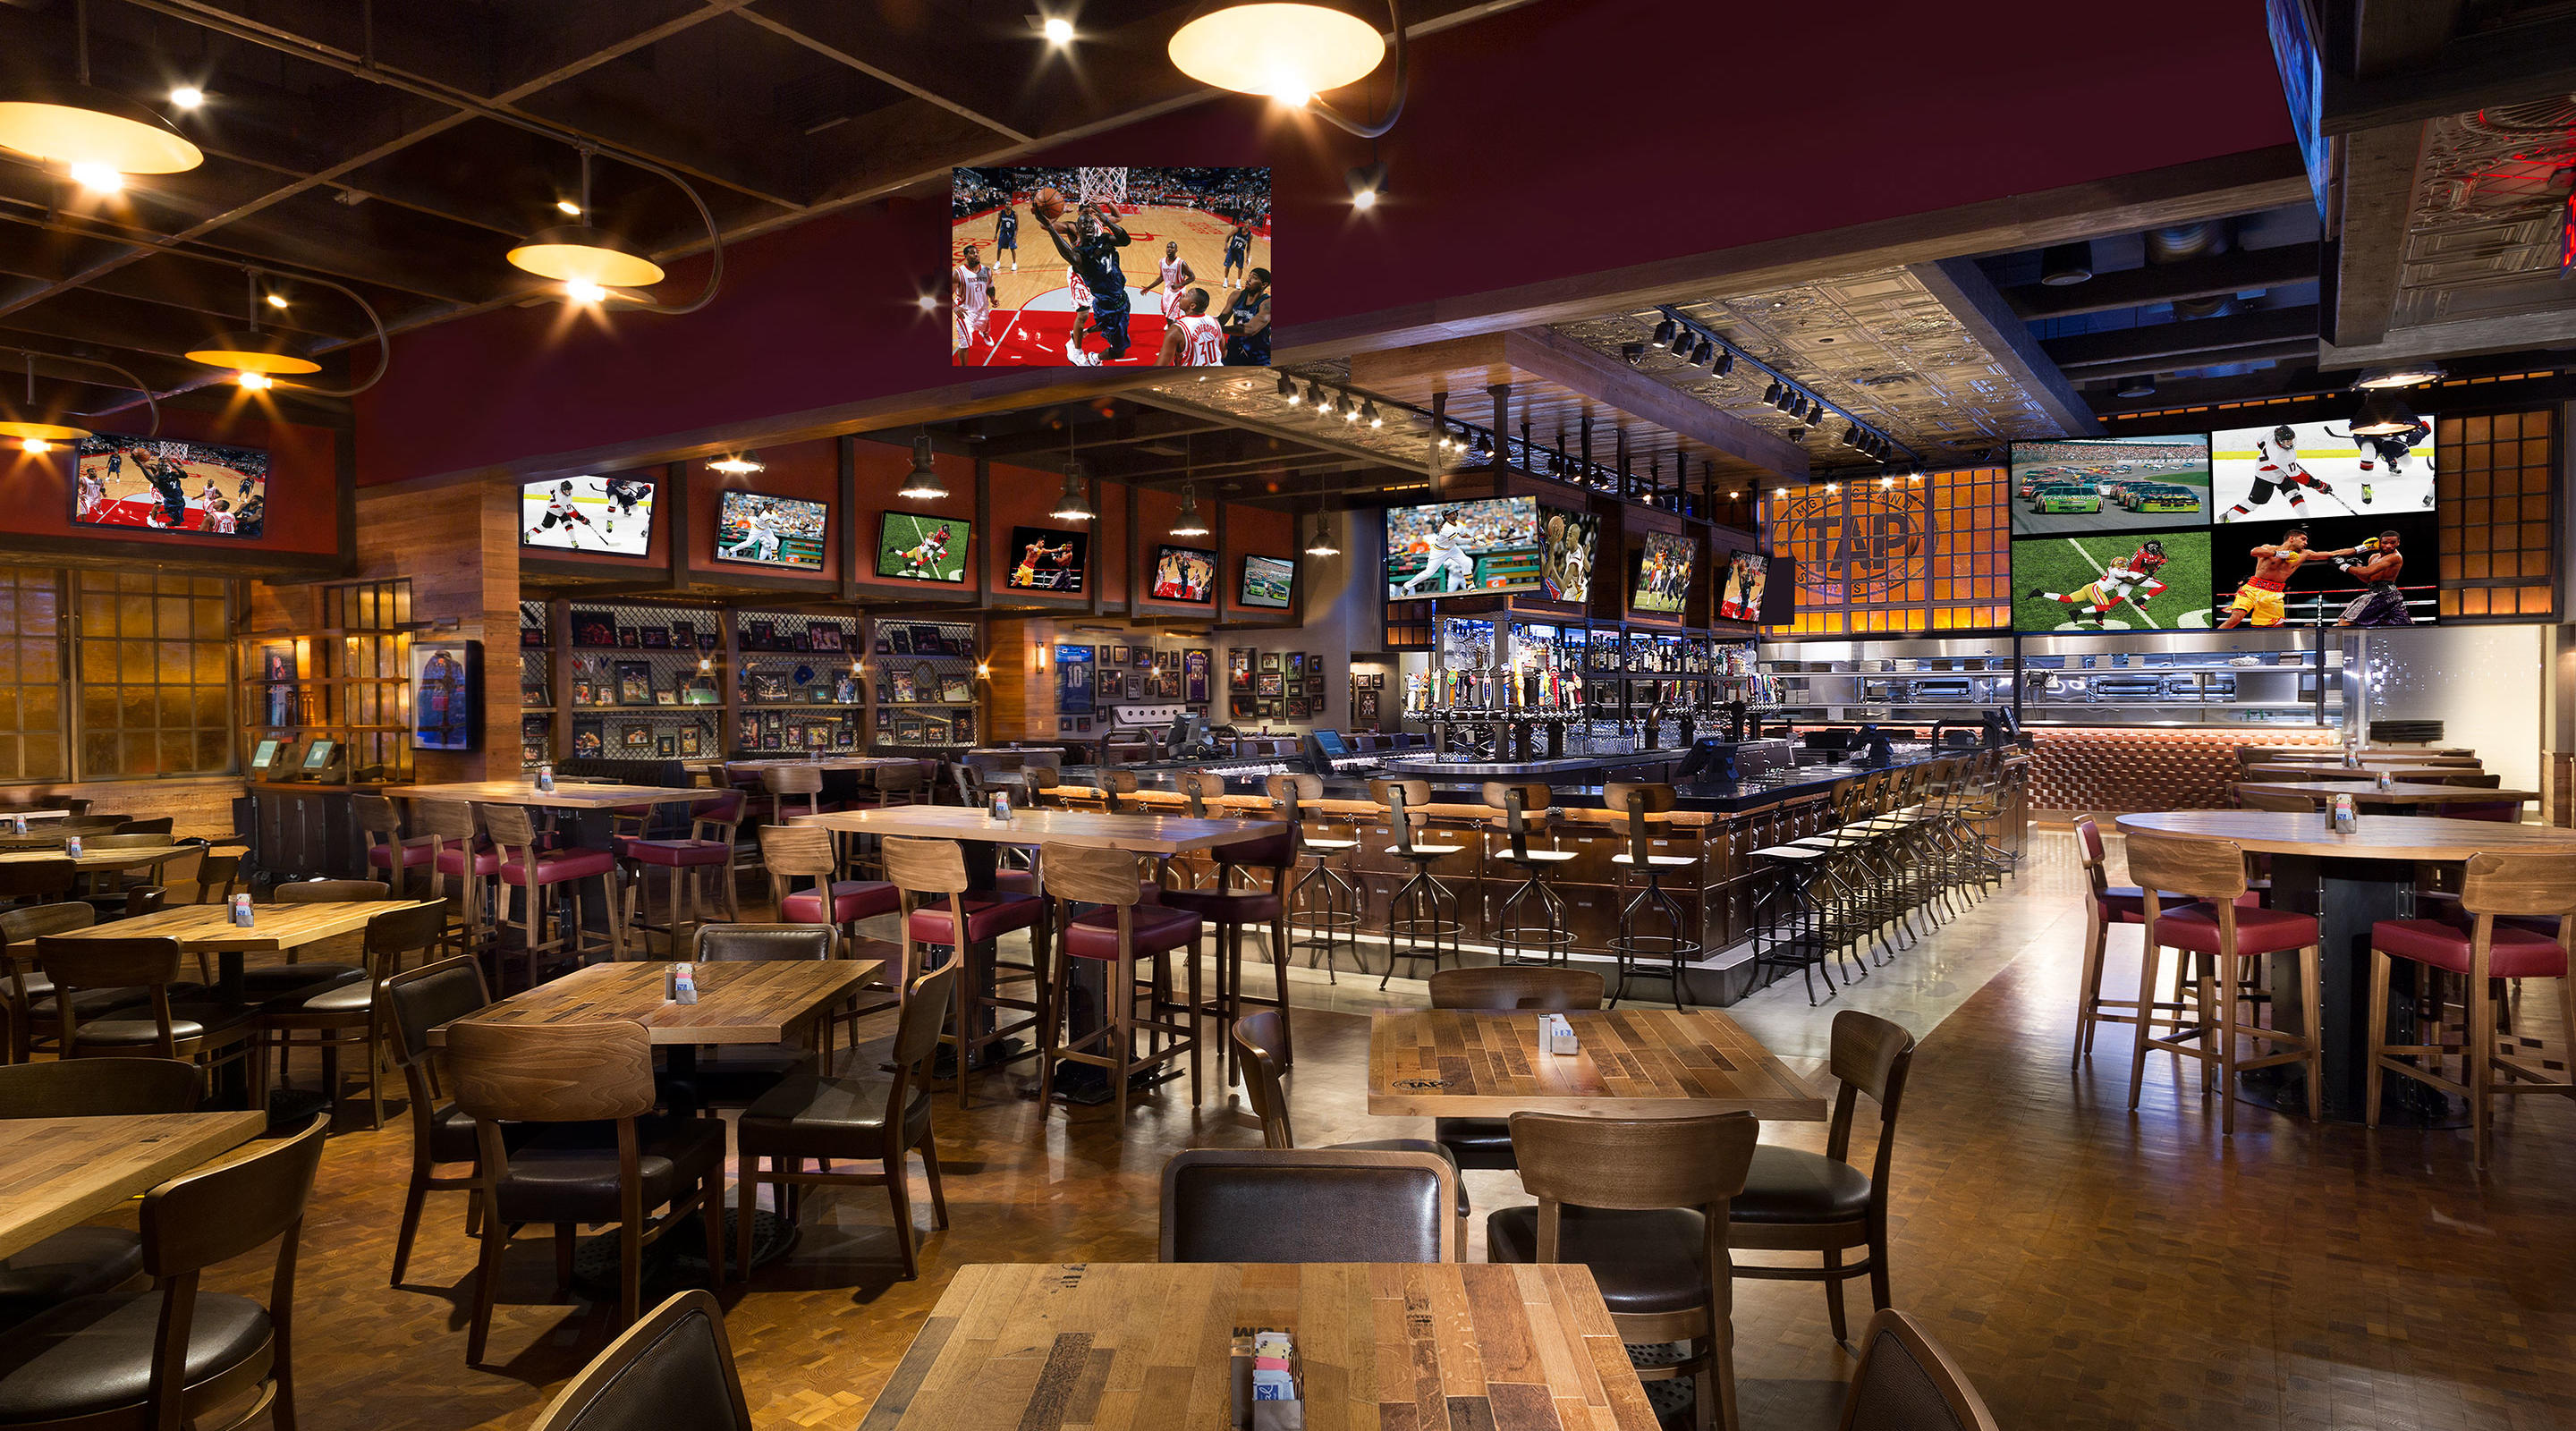 sportsbook bar & grill at the palazzo online sports bookie